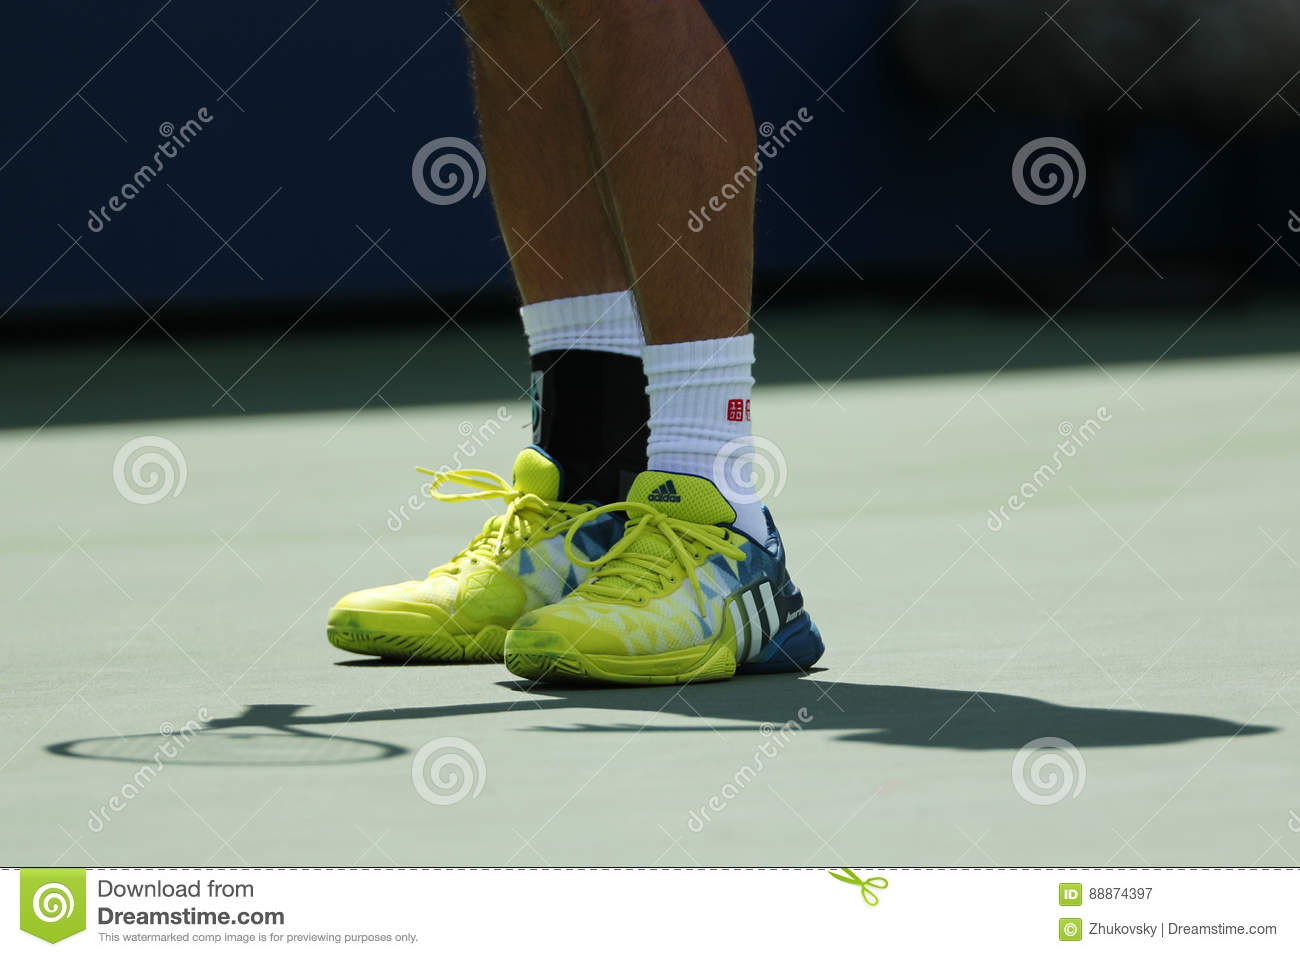 pro tennis players dating Martina hingis (born 30 september 1980) is a swiss former professional tennis player who she also played for the new york sportimes of the world teamtennis pro she dated former tennis players ivo heuberger and julian alonso.